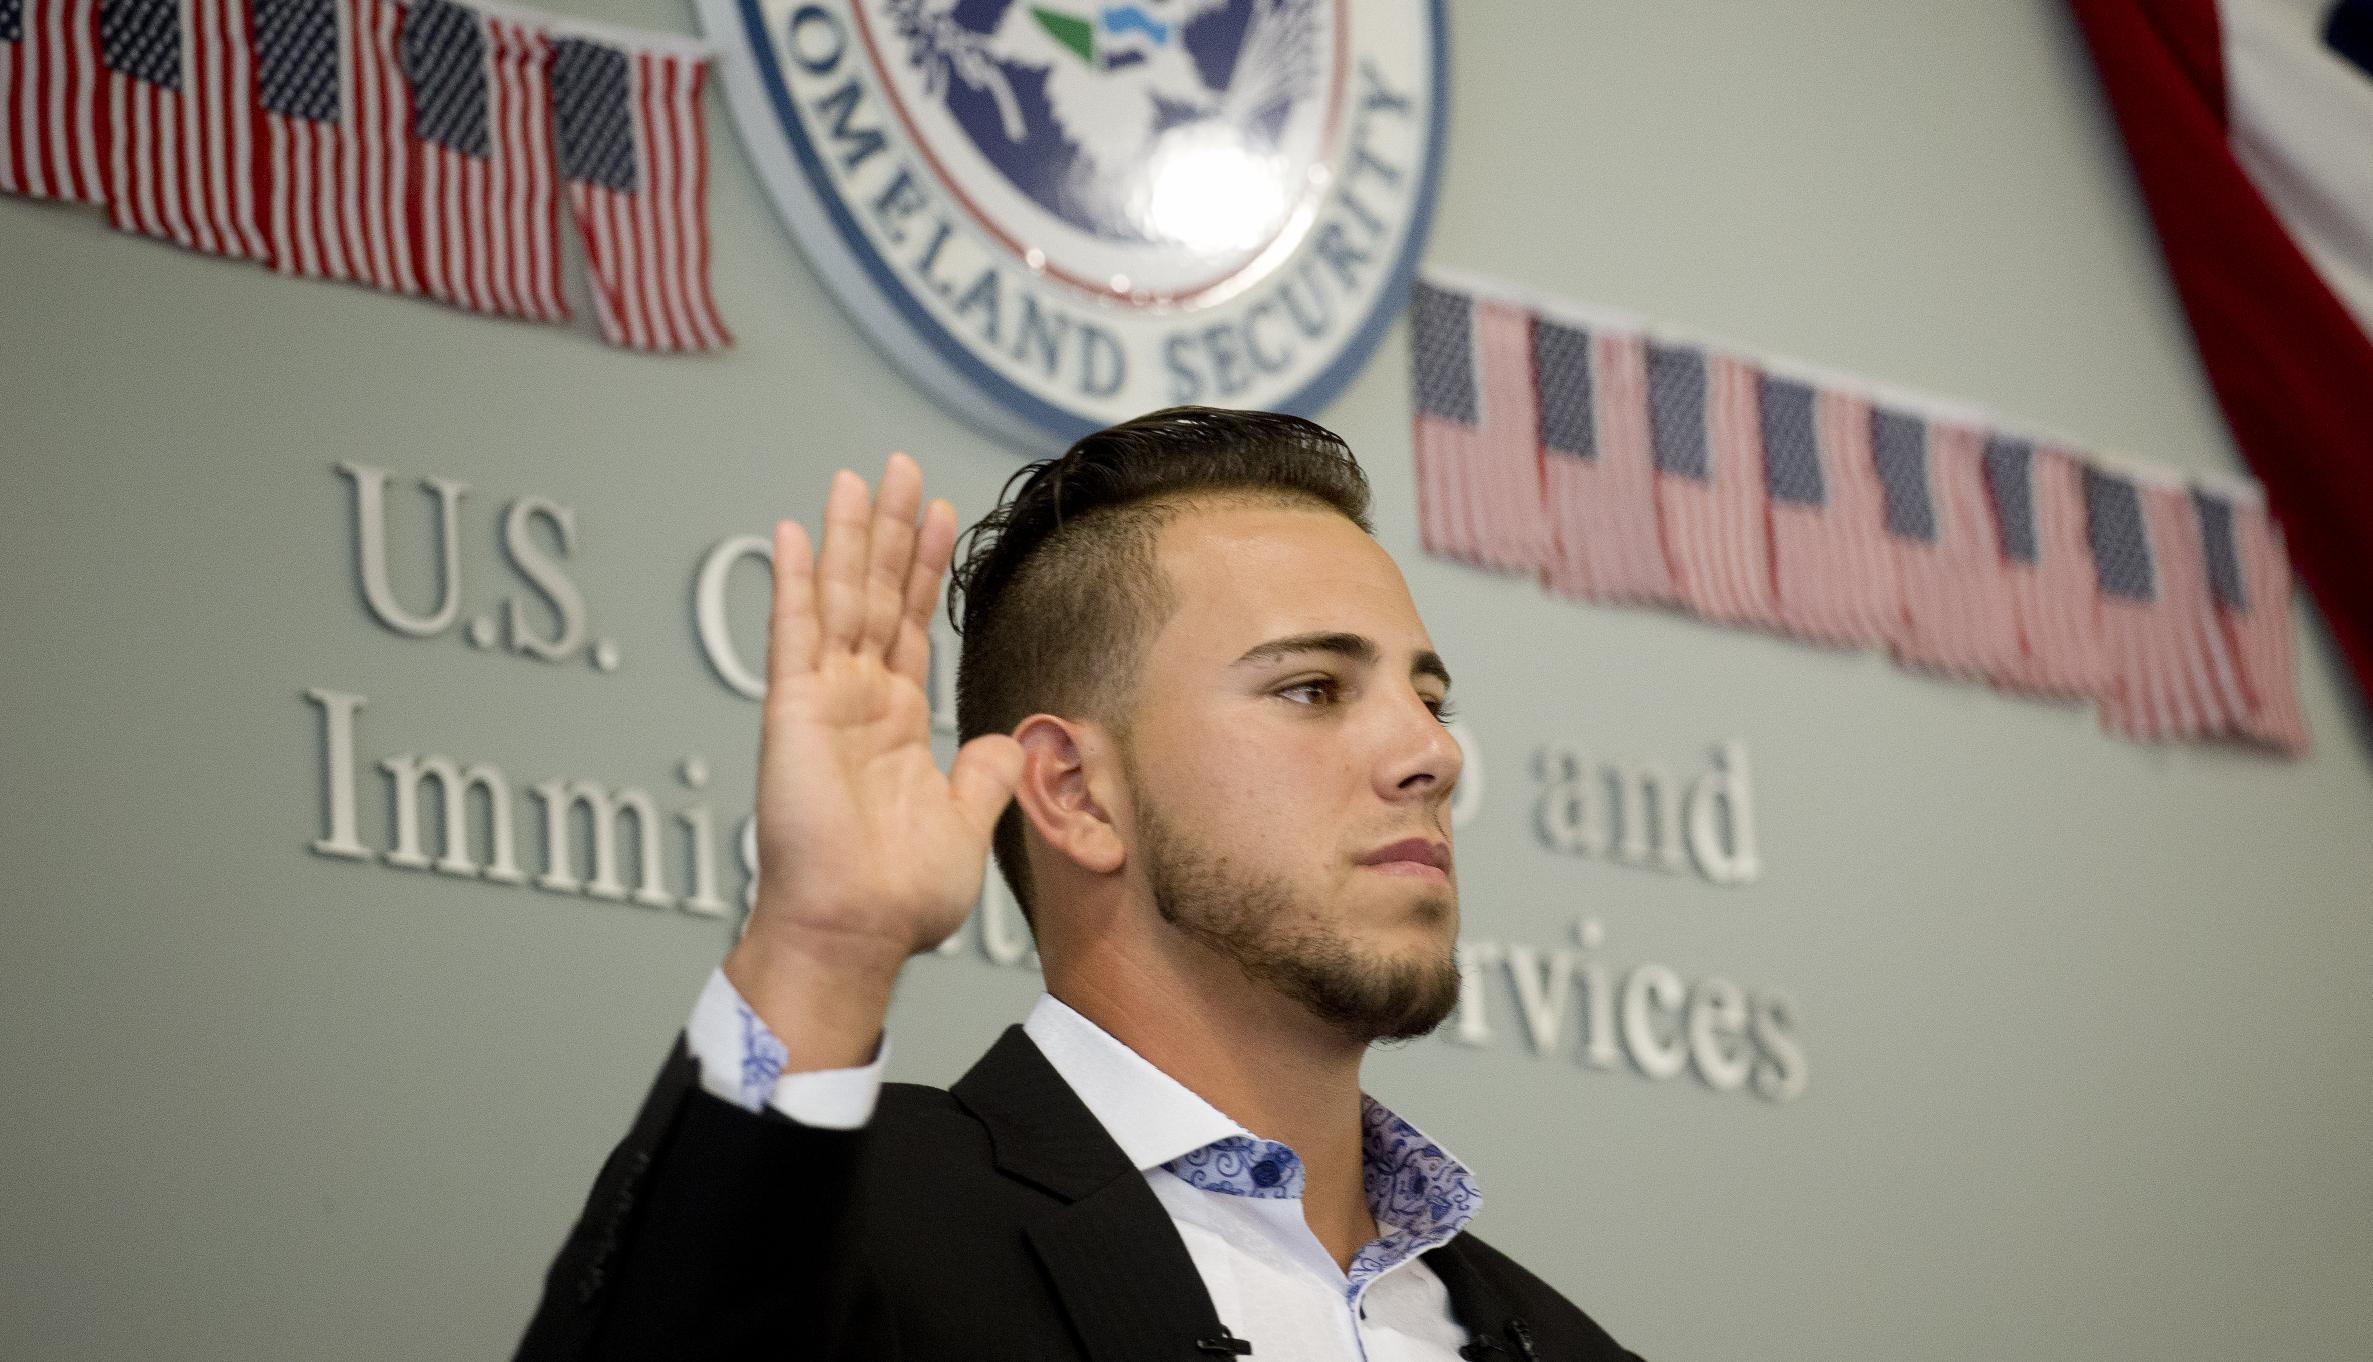 Miami pitcher Jose Fernandez, from Cuba, becomes US citizen